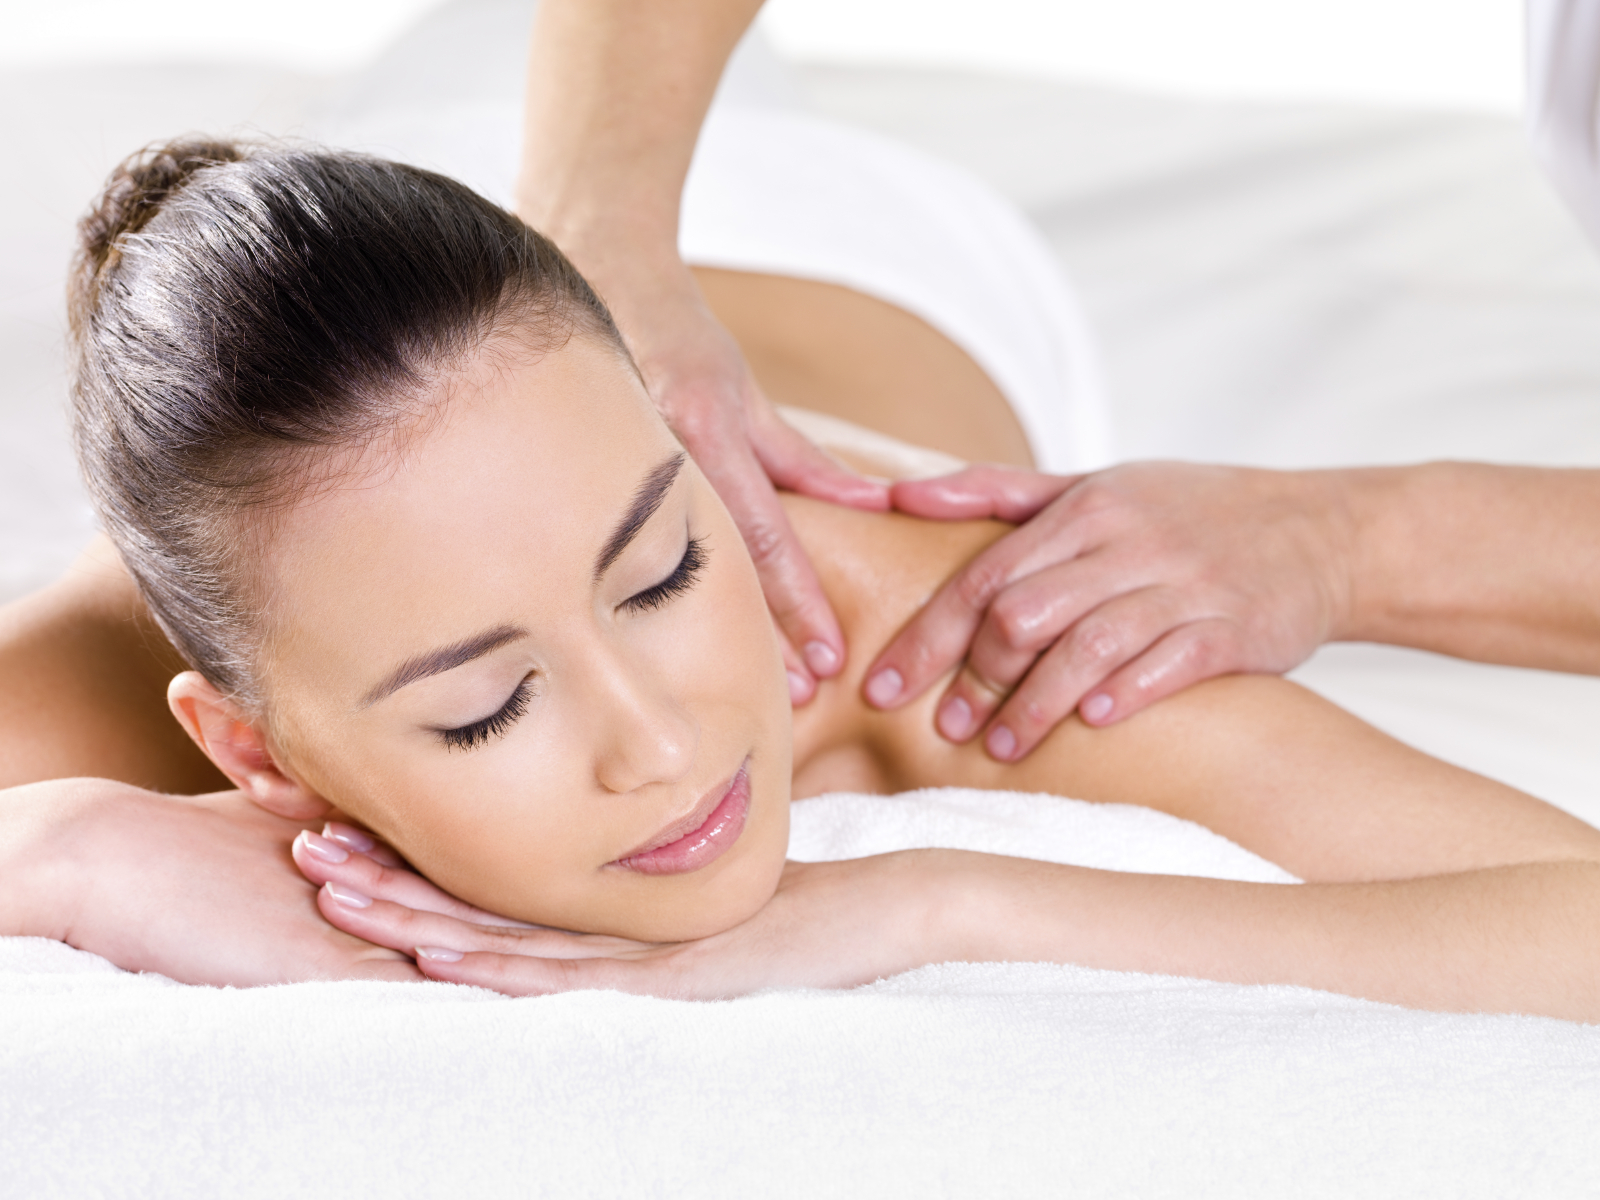 How do you improve your massage therapy techniques?